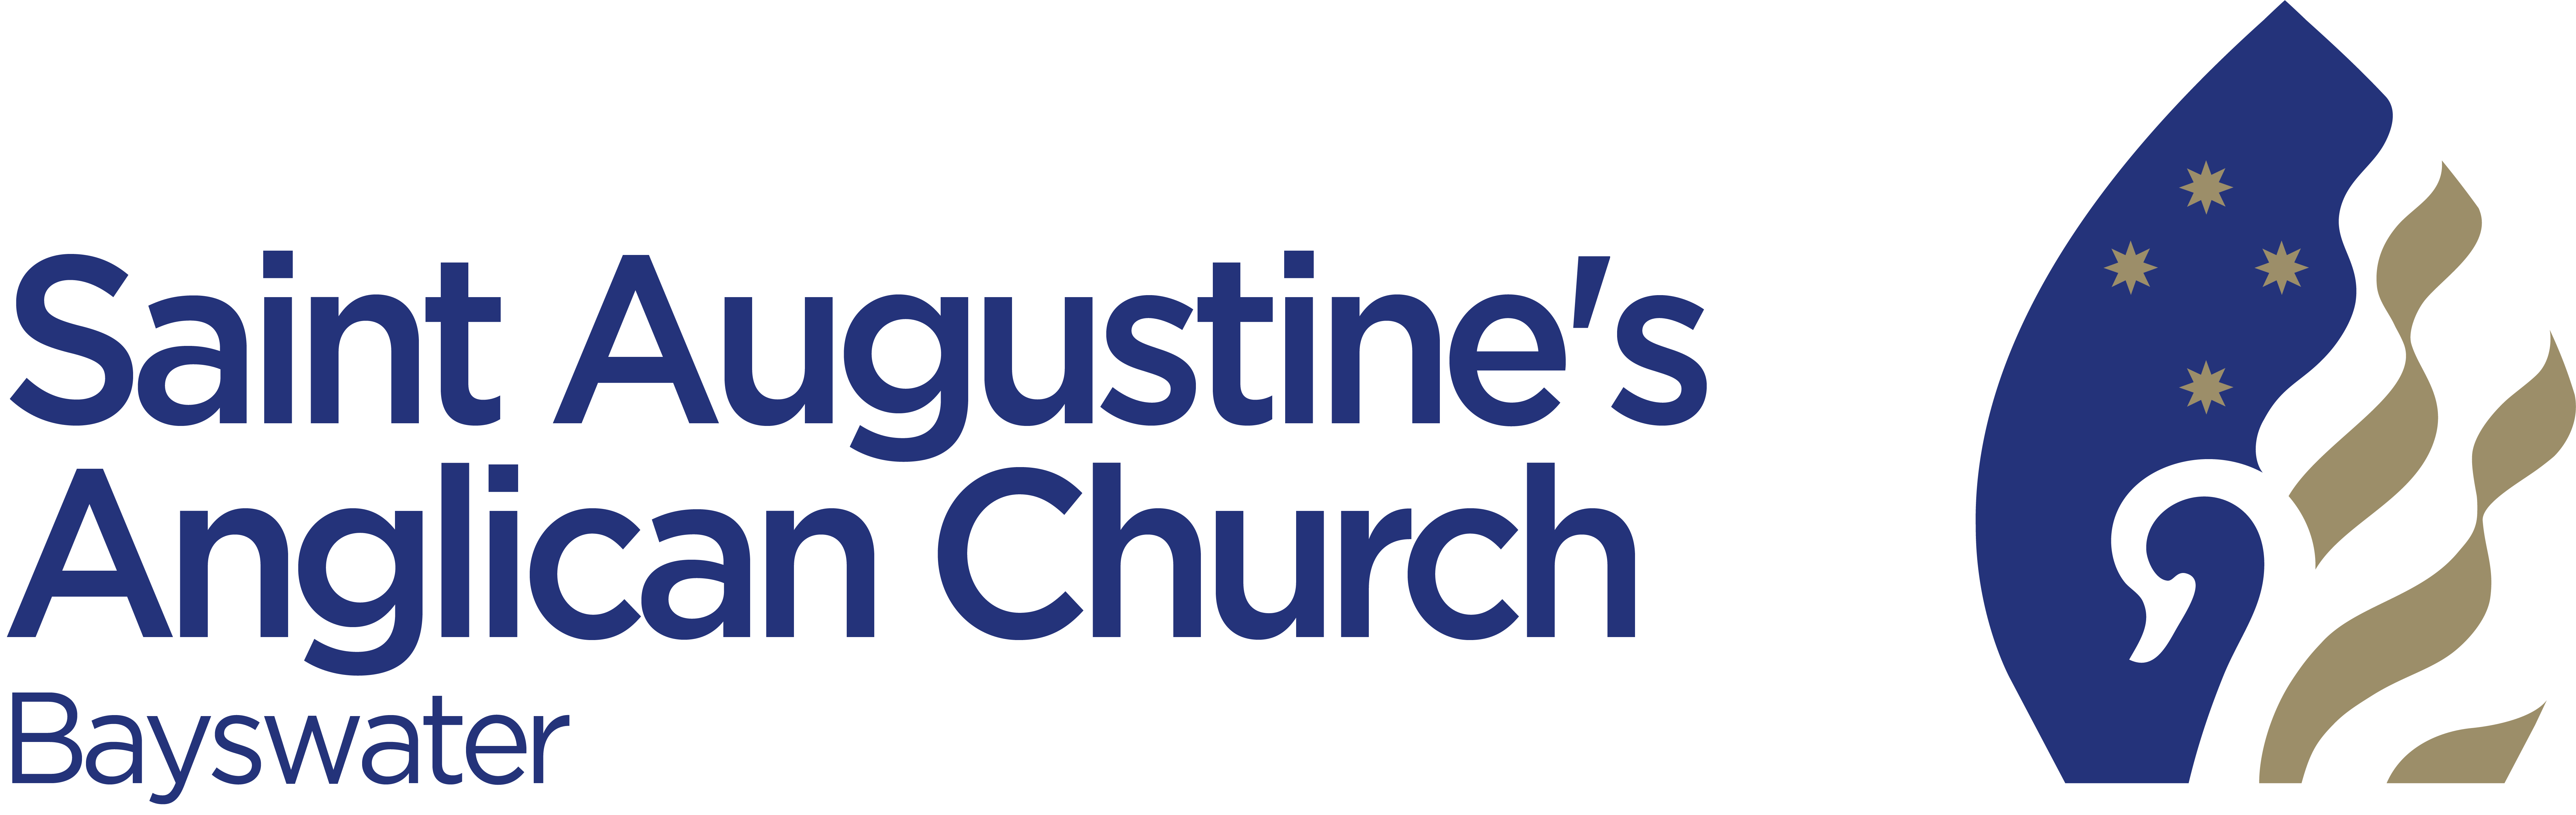 St Augustine's Anglican Church, Bayswater